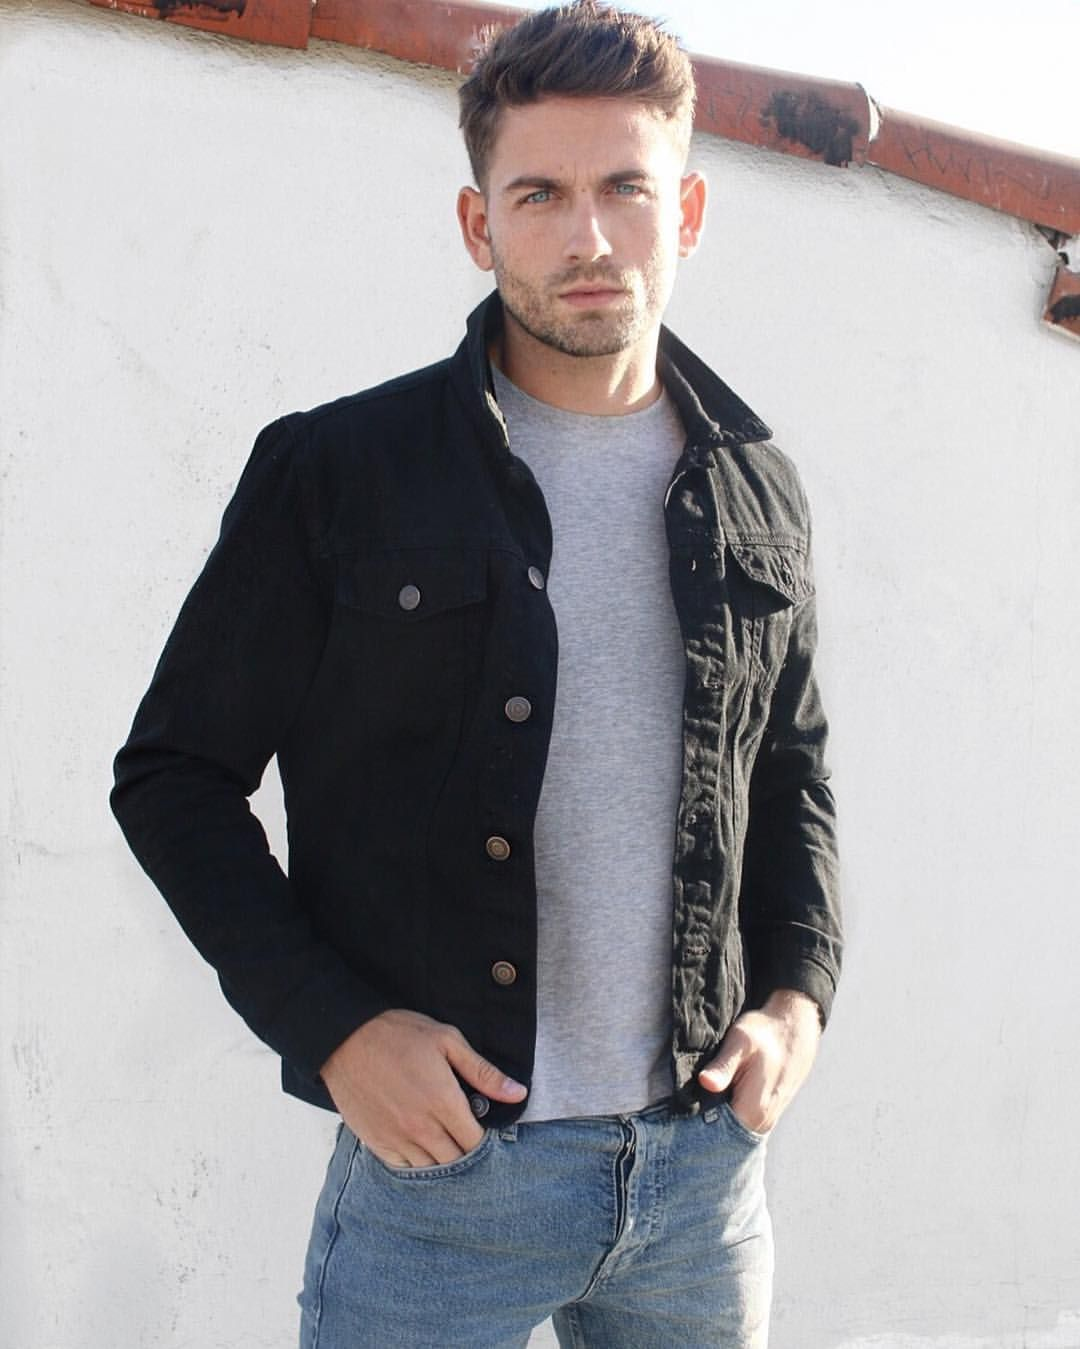 See This Instagram Photo By Timbryan 4 187 Likes Mens Casual Outfits Black Denim Jacket Men Mens Outfits